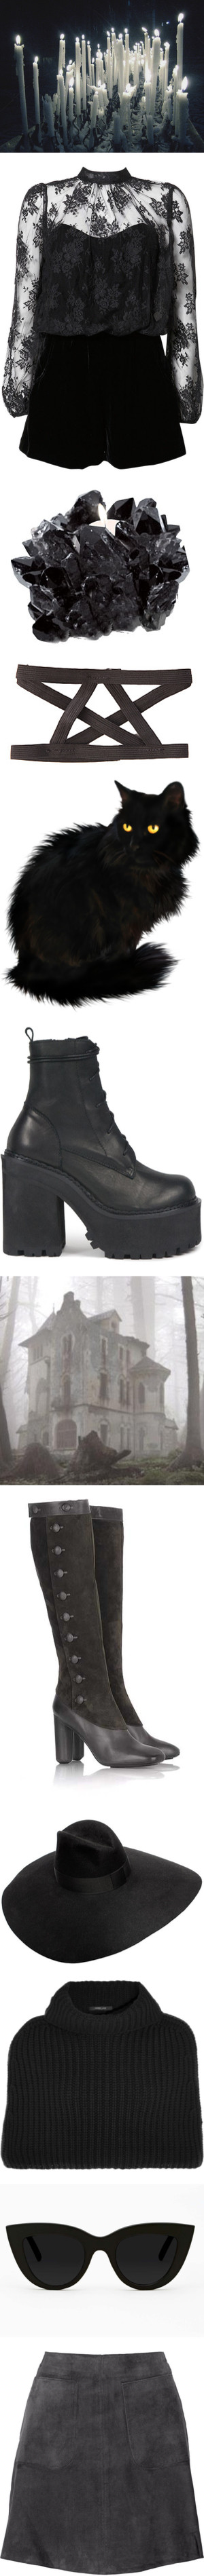 """""""Does this black match?"""" by meta-morphosis ❤ liked on Polyvore"""